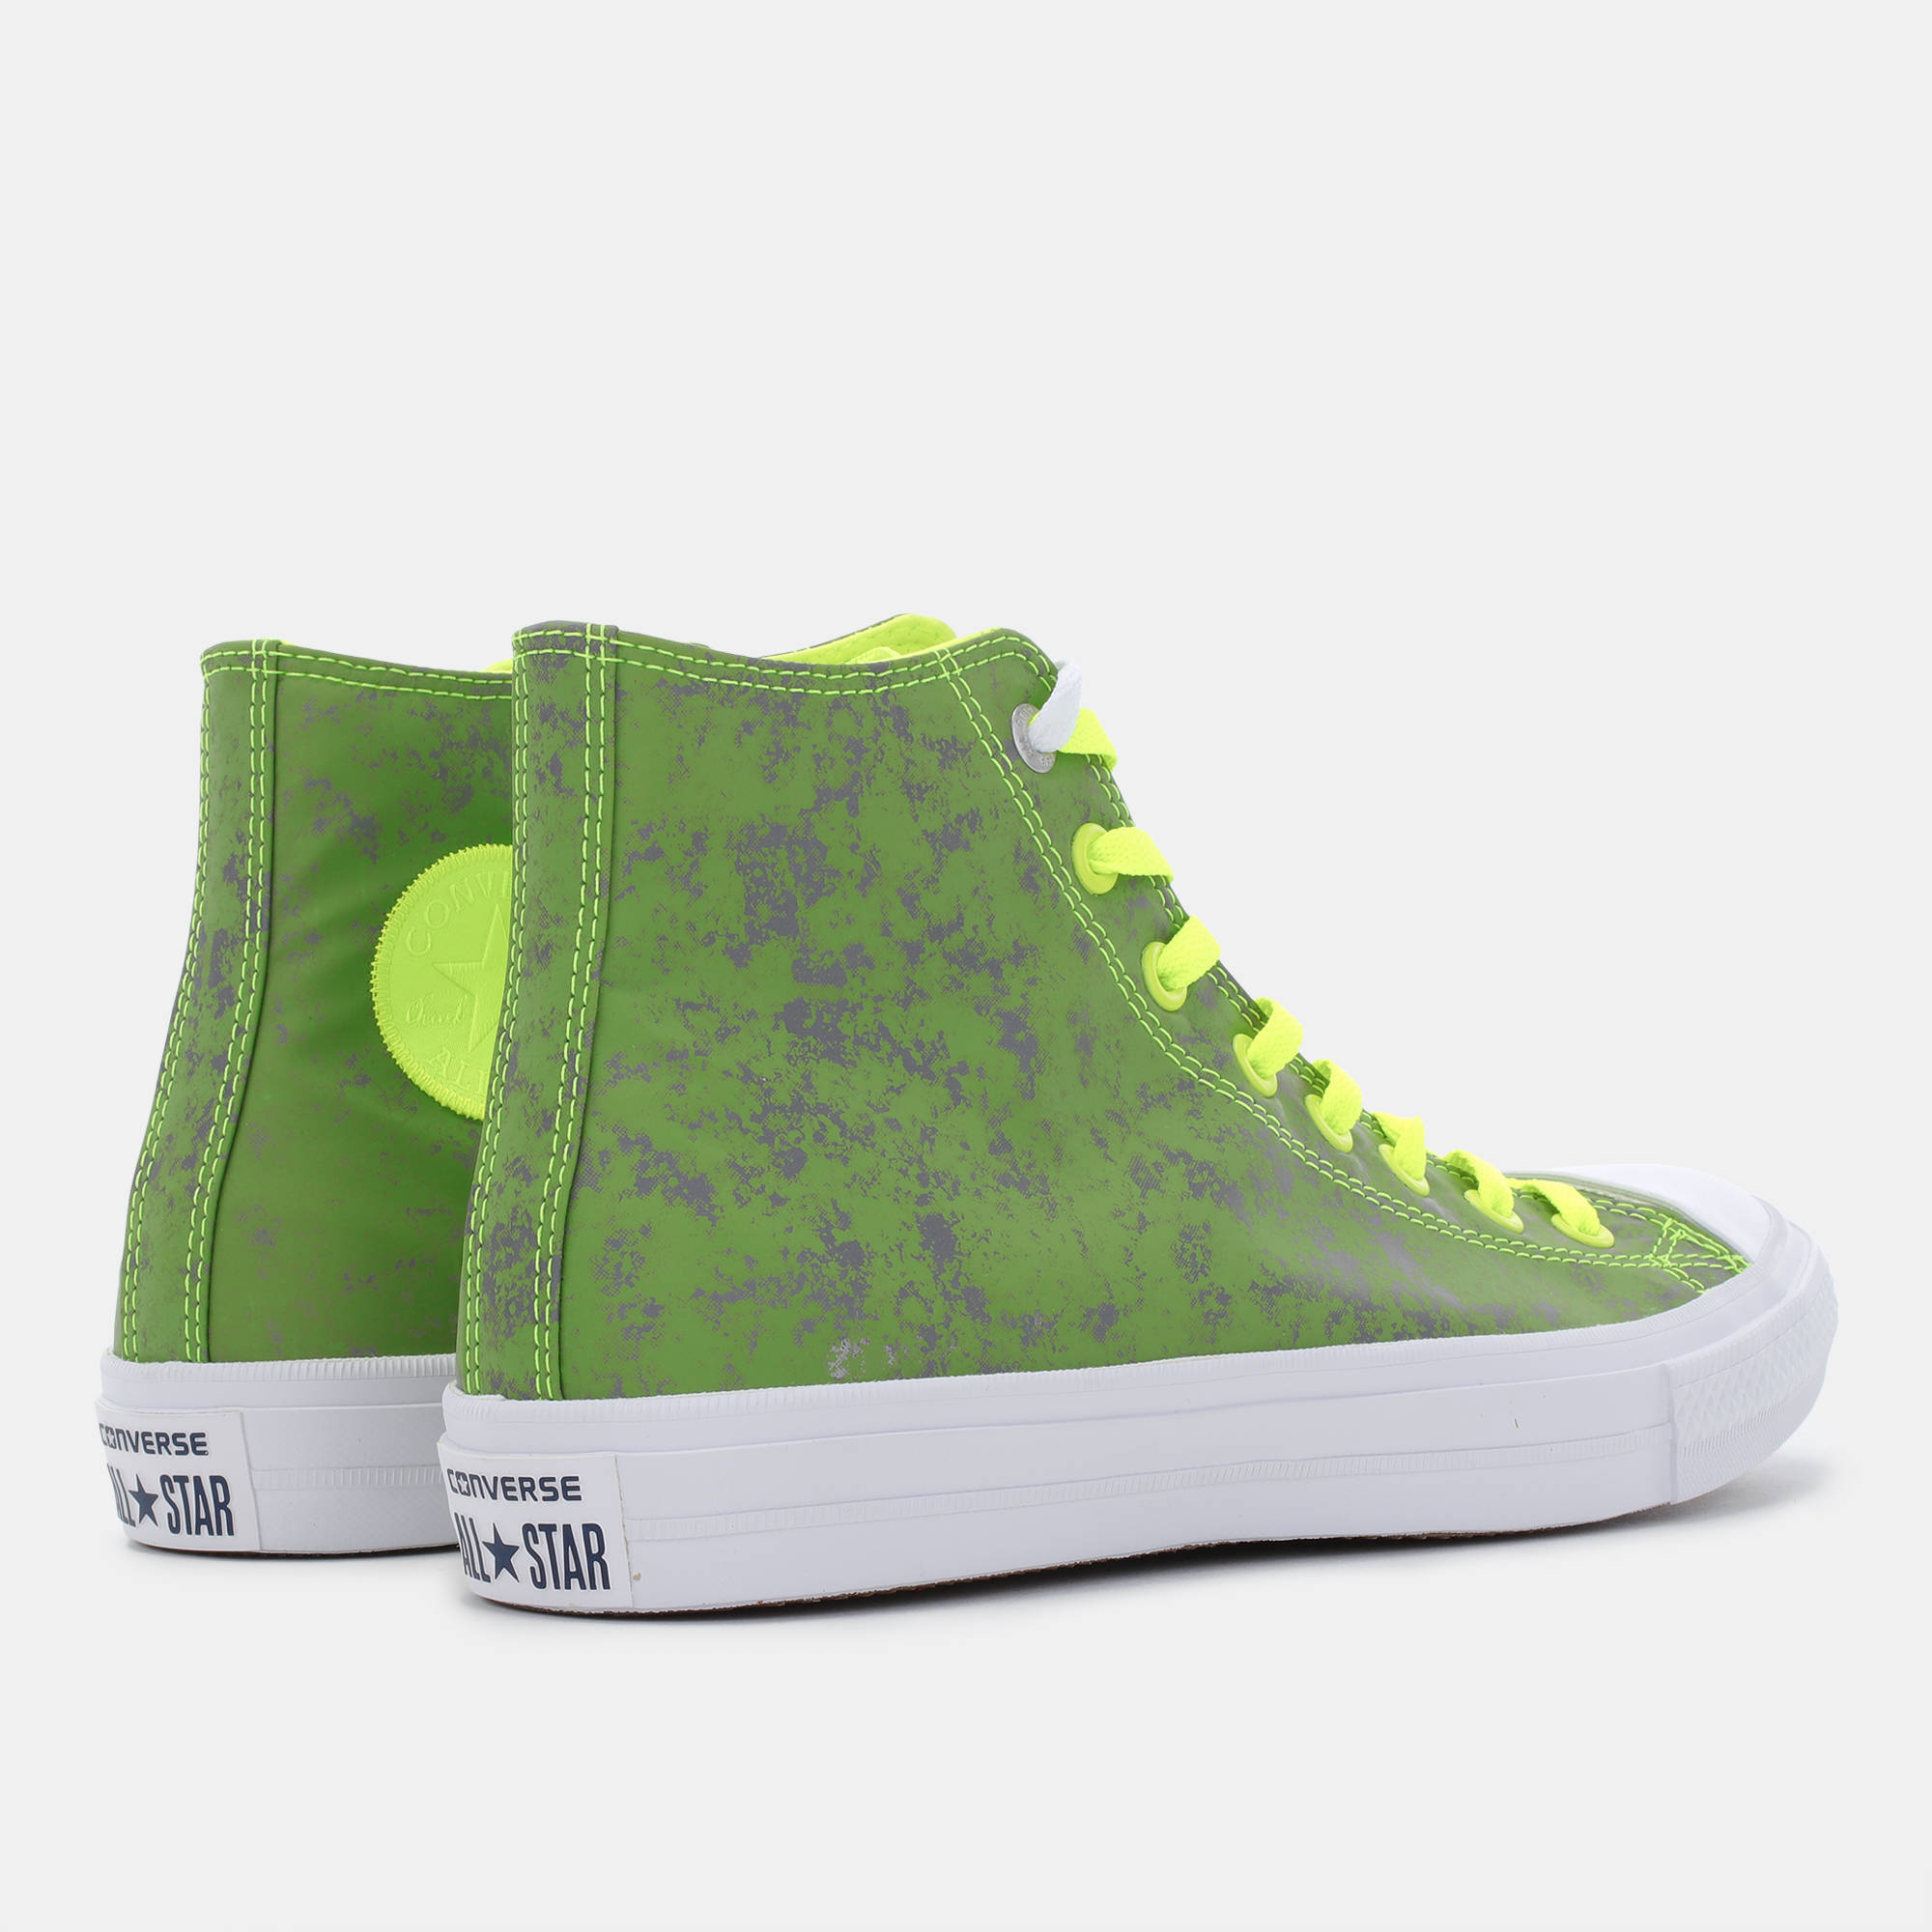 Green Converse – A Distinct Shoe from the Brand!